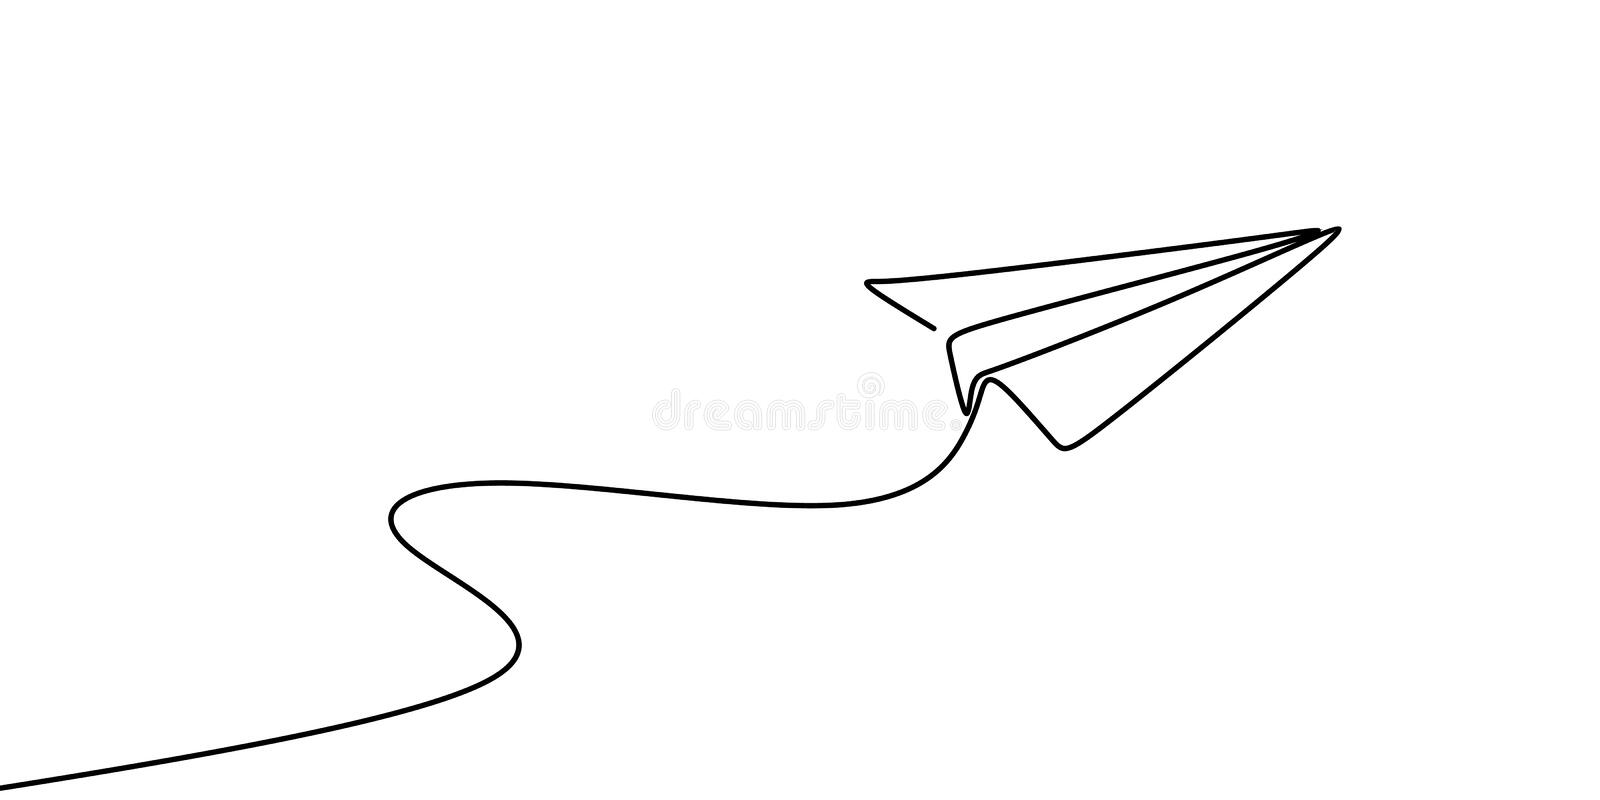 Continuous line drawing of paper plane vector illustration vector illustration